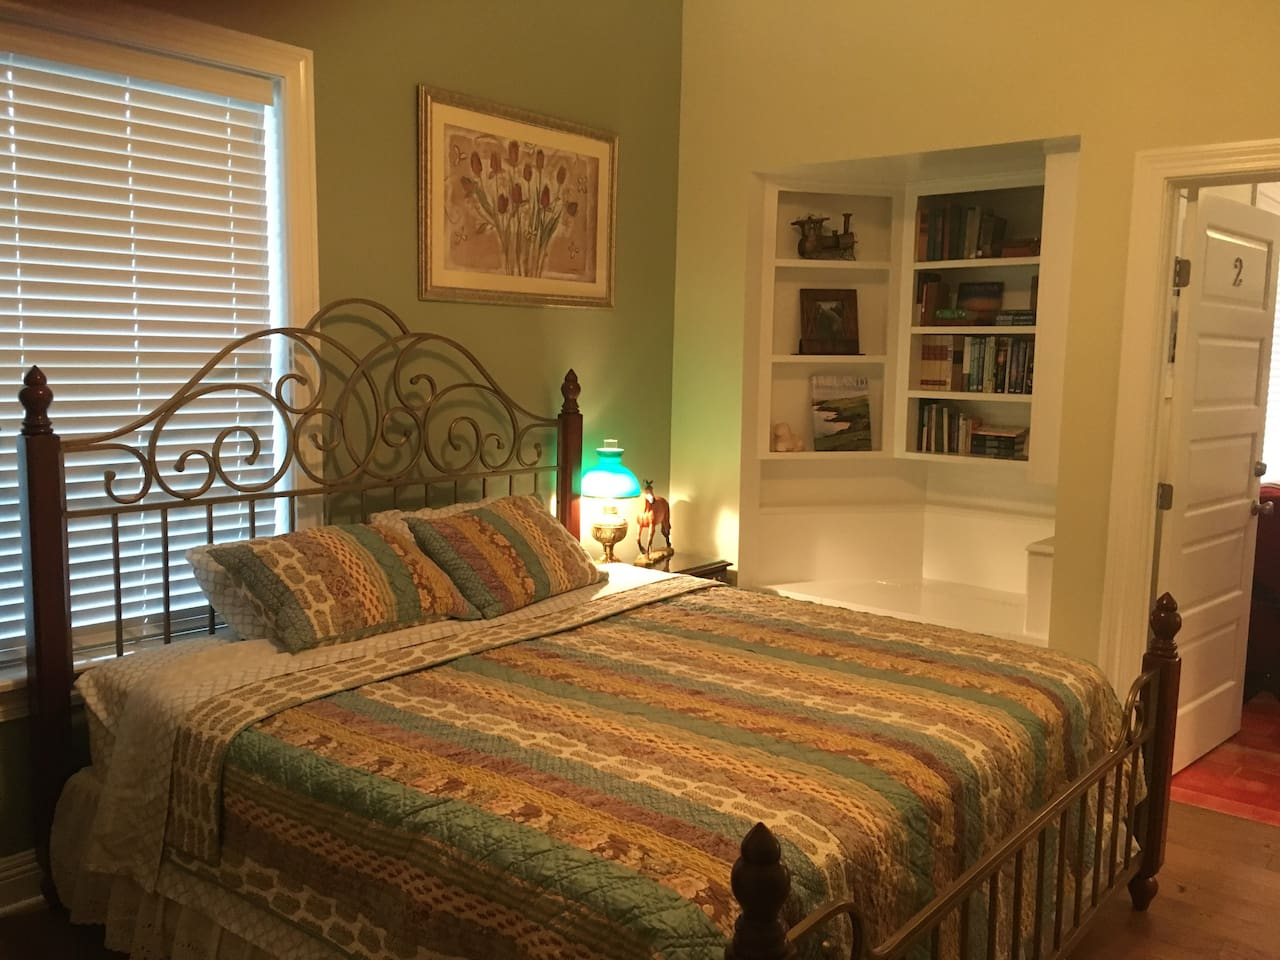 Enjoy Our Sage Room Equipped on the First Floor with ADA Accessibility